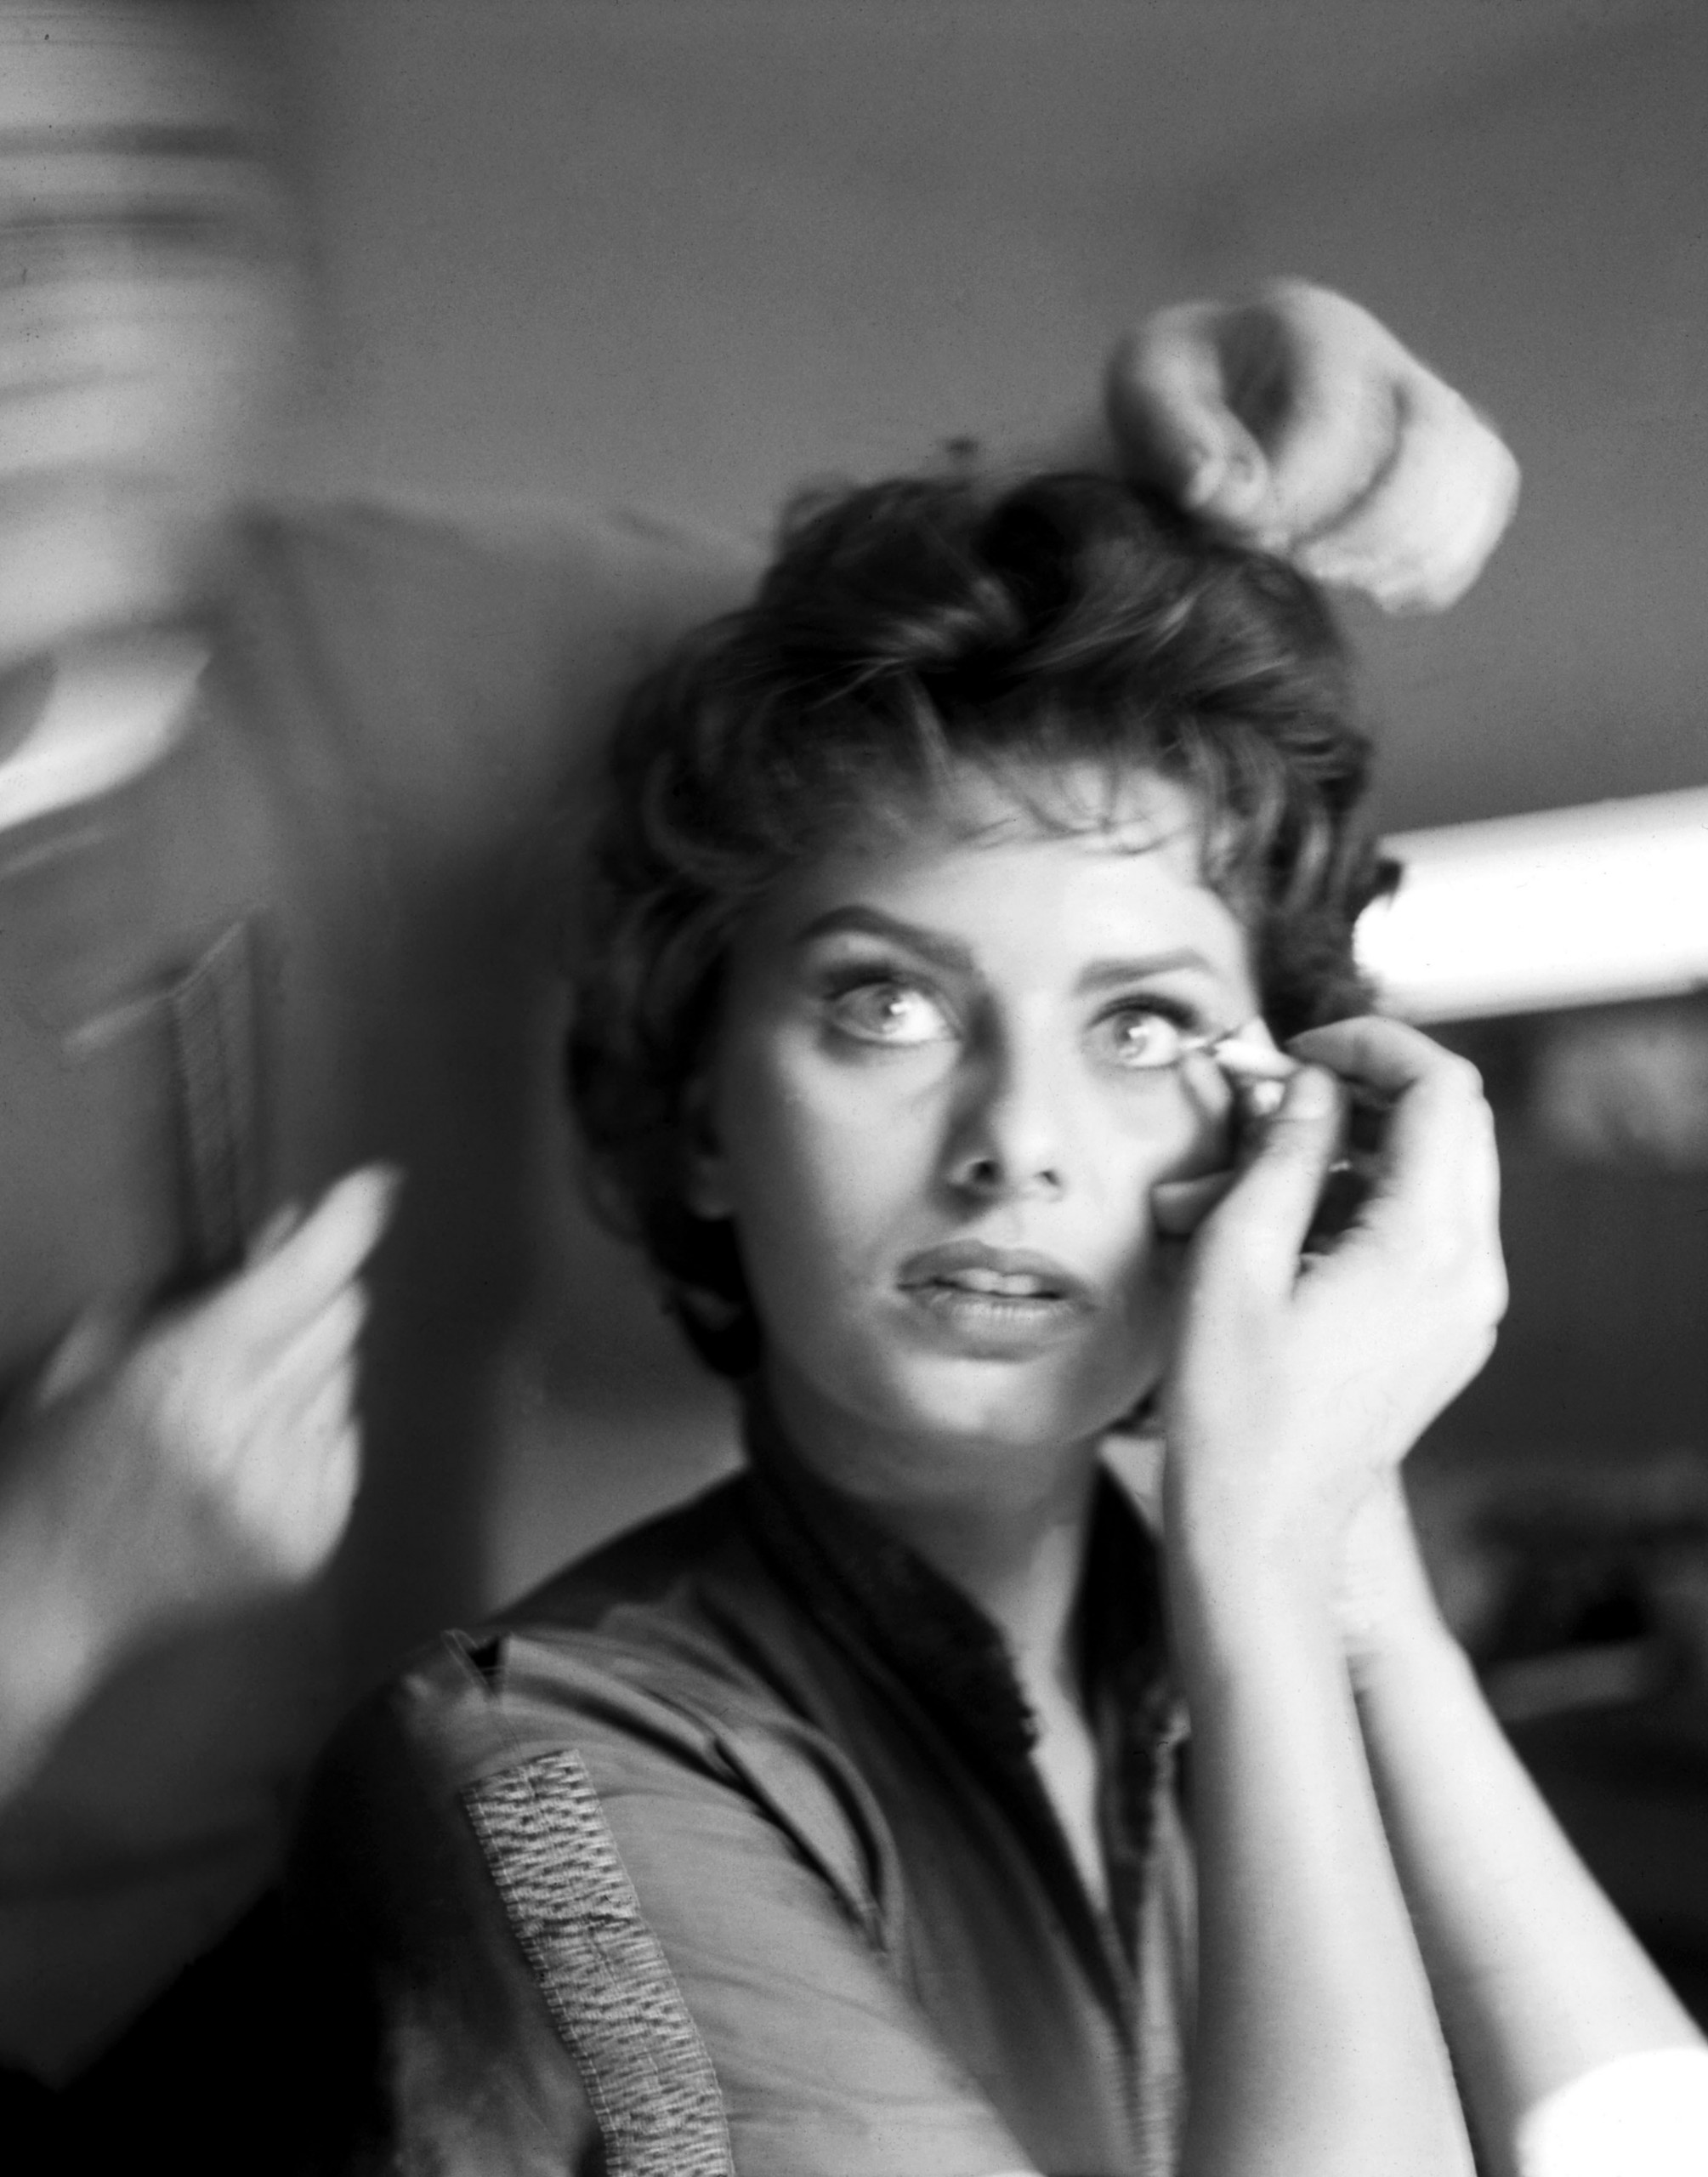 Sophia Loren images Sophia Loren HQ HD wallpaper and  : Sophia Loren HQ sophia loren 10175644 2009 2560 from www.fanpop.com size 2009 x 2560 jpeg 573kB